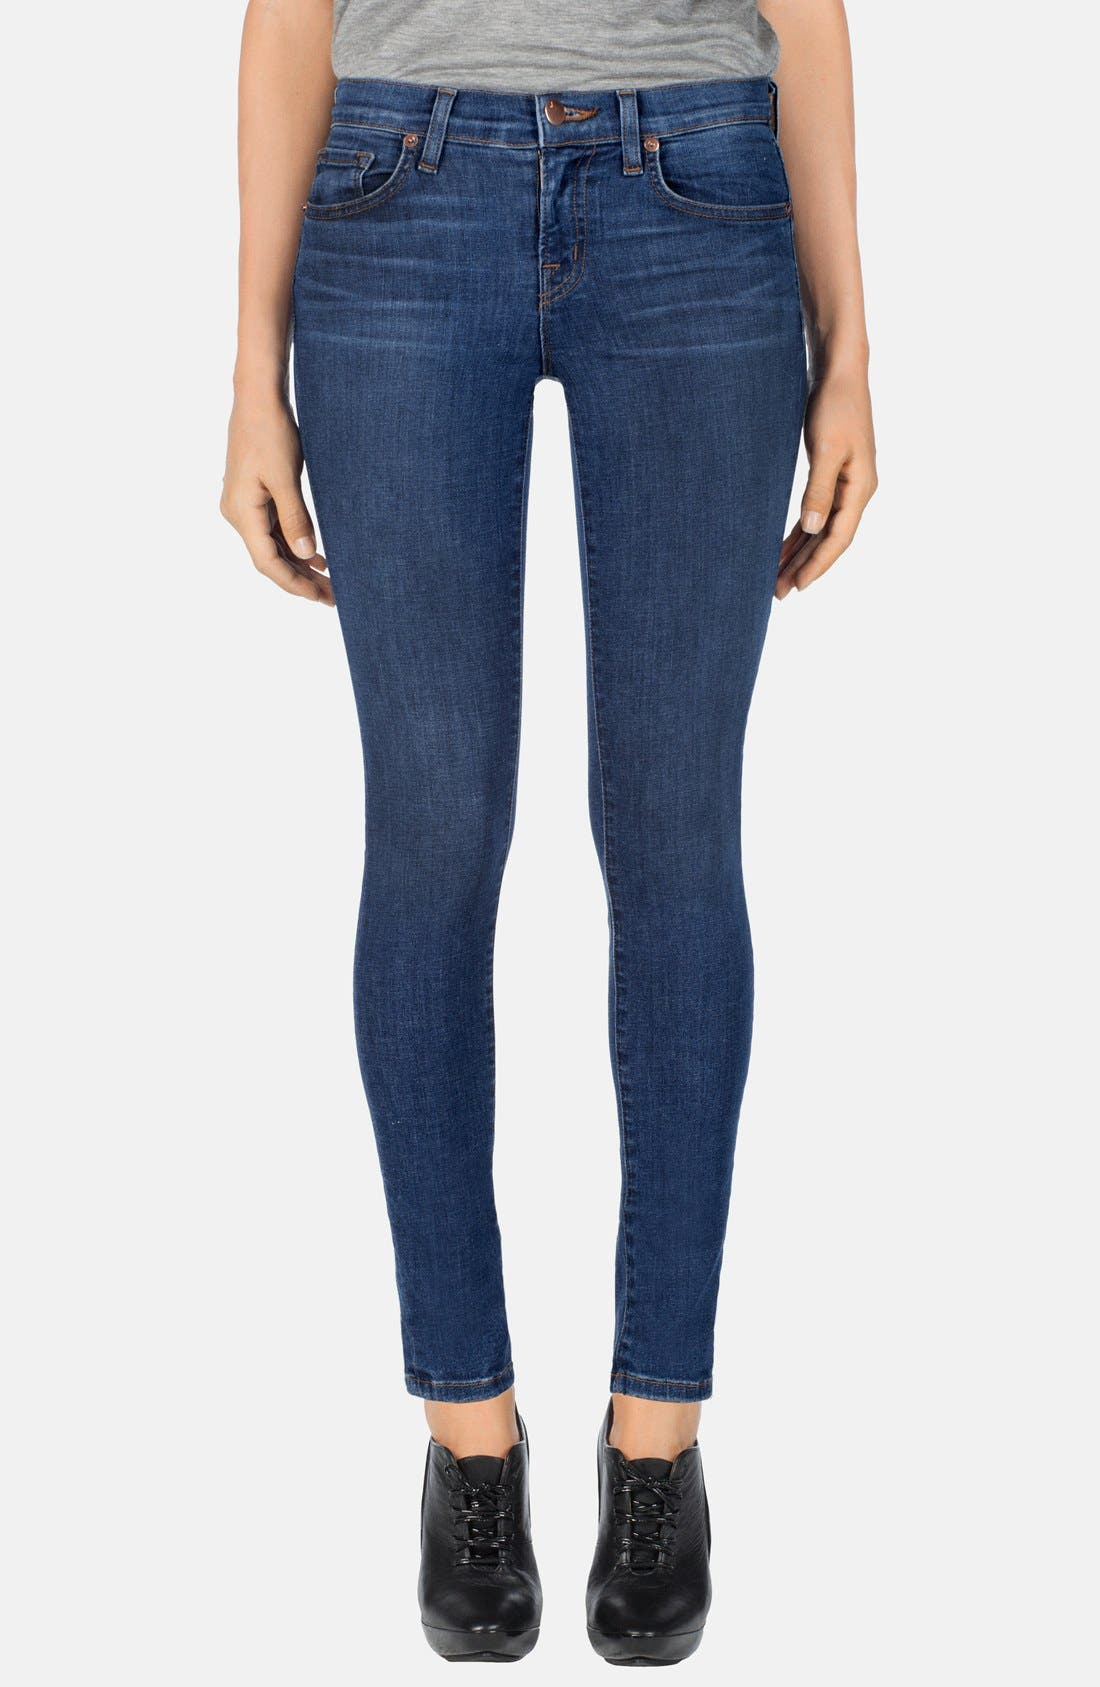 Alternate Image 1 Selected - J Brand Mid Rise Skinny Jeans (Pacifica)